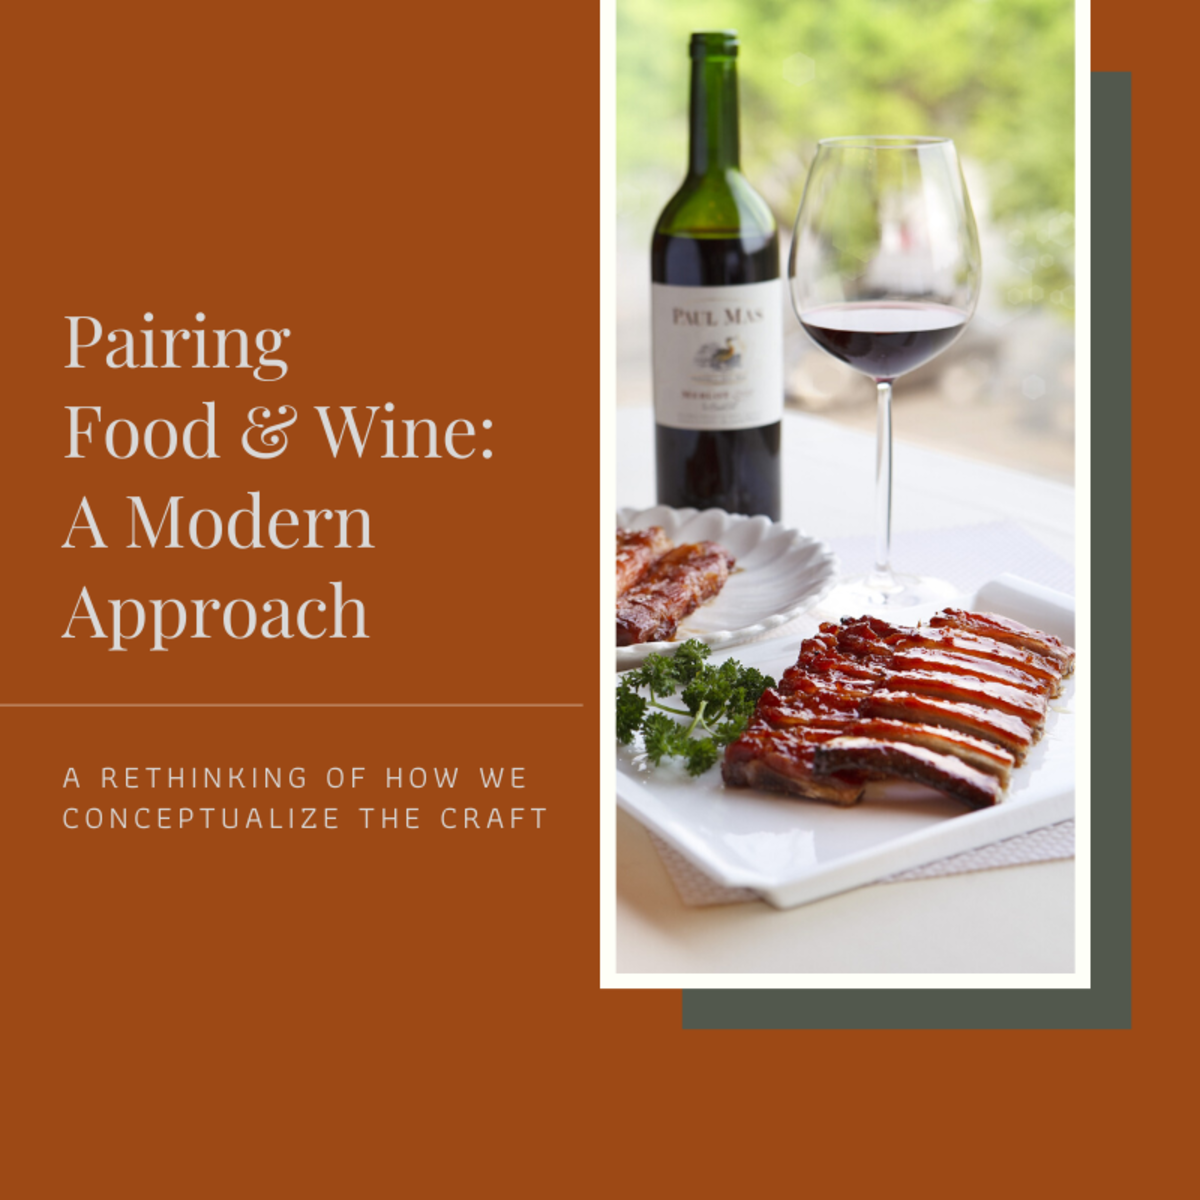 A Modern Approach to Pairing Food and Wine